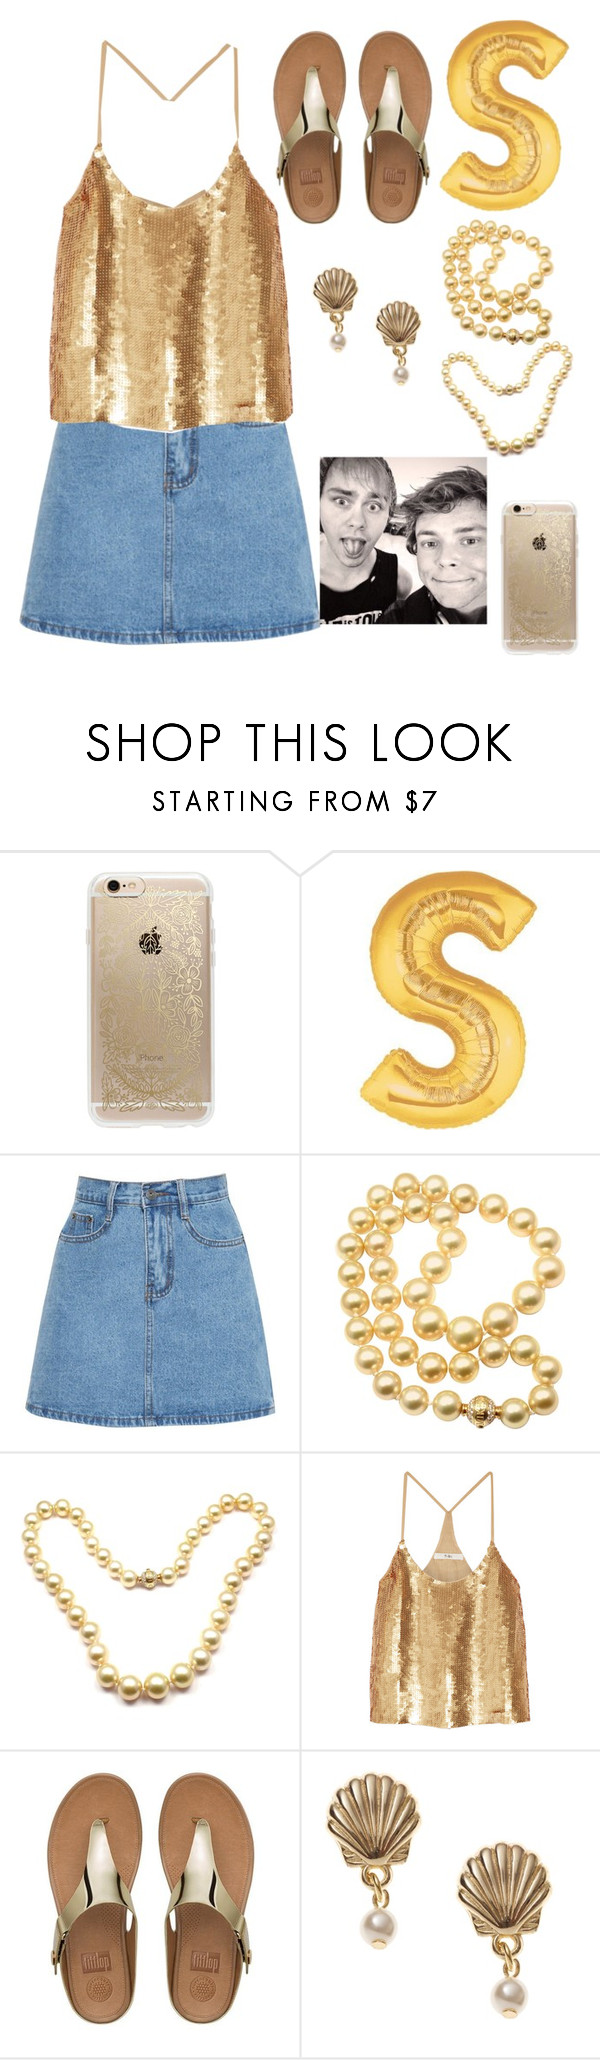 """bash"" by gb041112 ❤ liked on Polyvore featuring Rifle Paper Co, Mikimoto, TIBI and FitFlop"